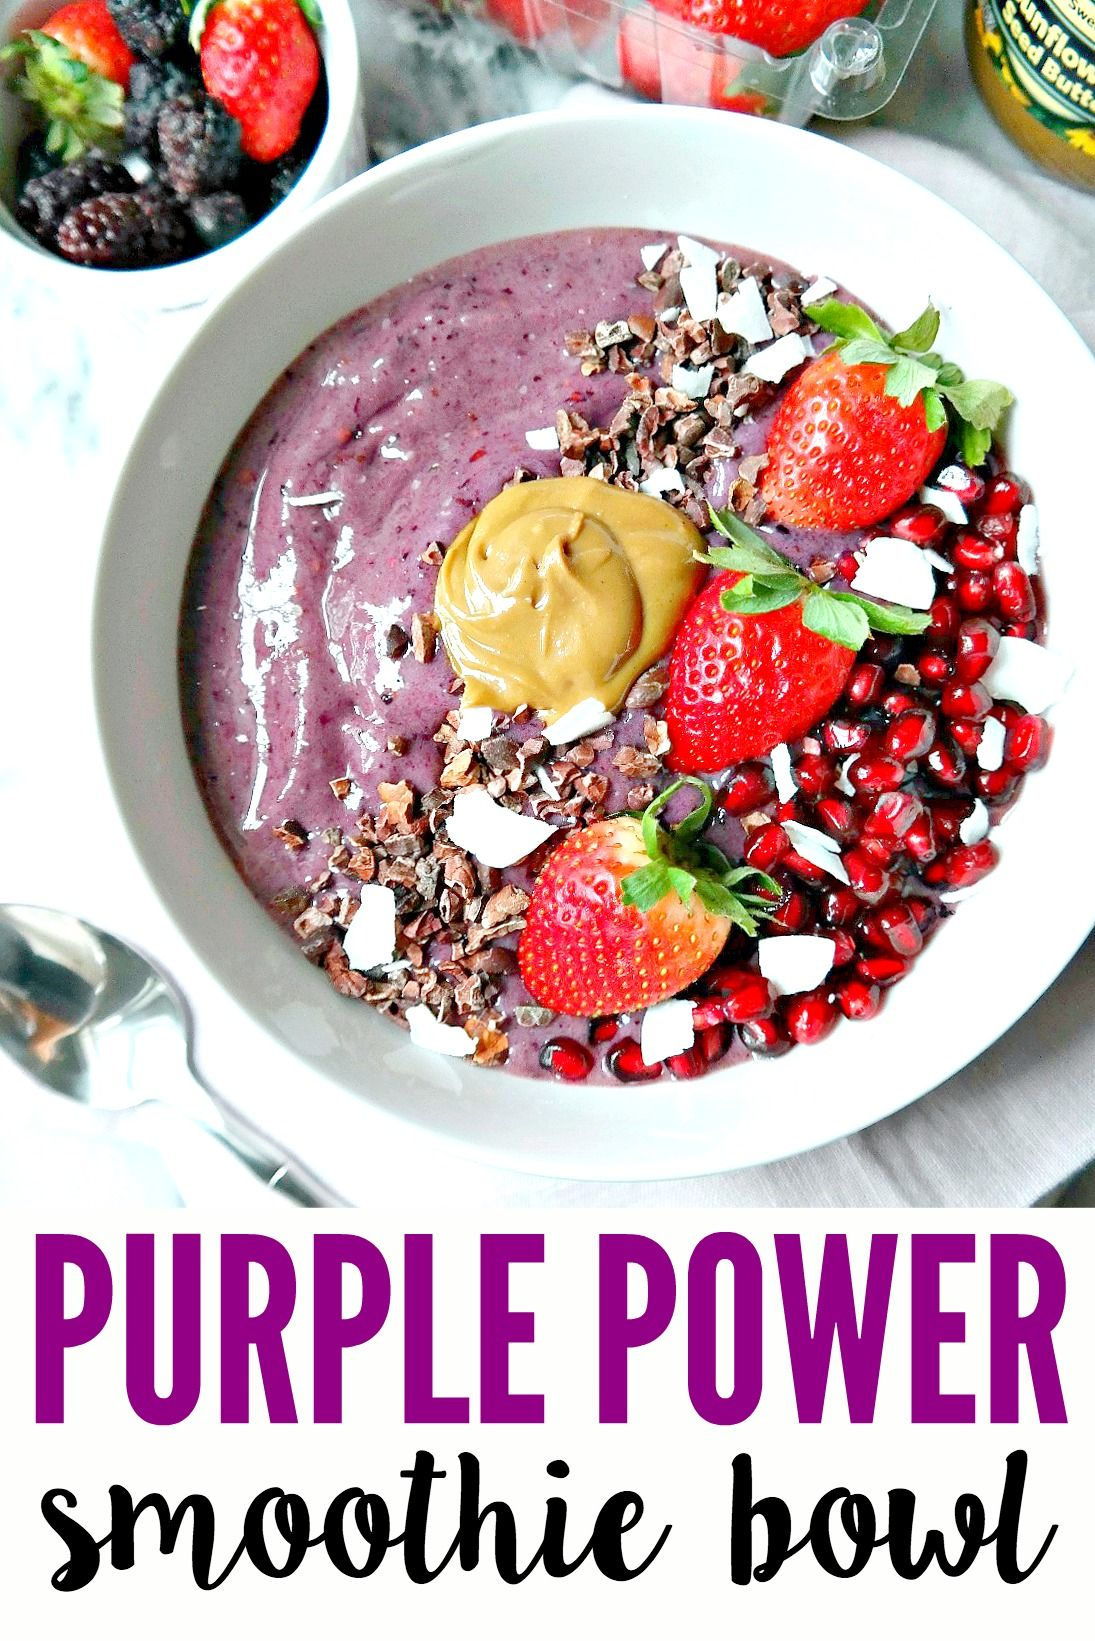 Dairy-free Vegan Purple Power Smoothie Bowl with antioxidants, omegas & fiber to keep you nourished. Decadently filling with superfoods, nut butter & more!